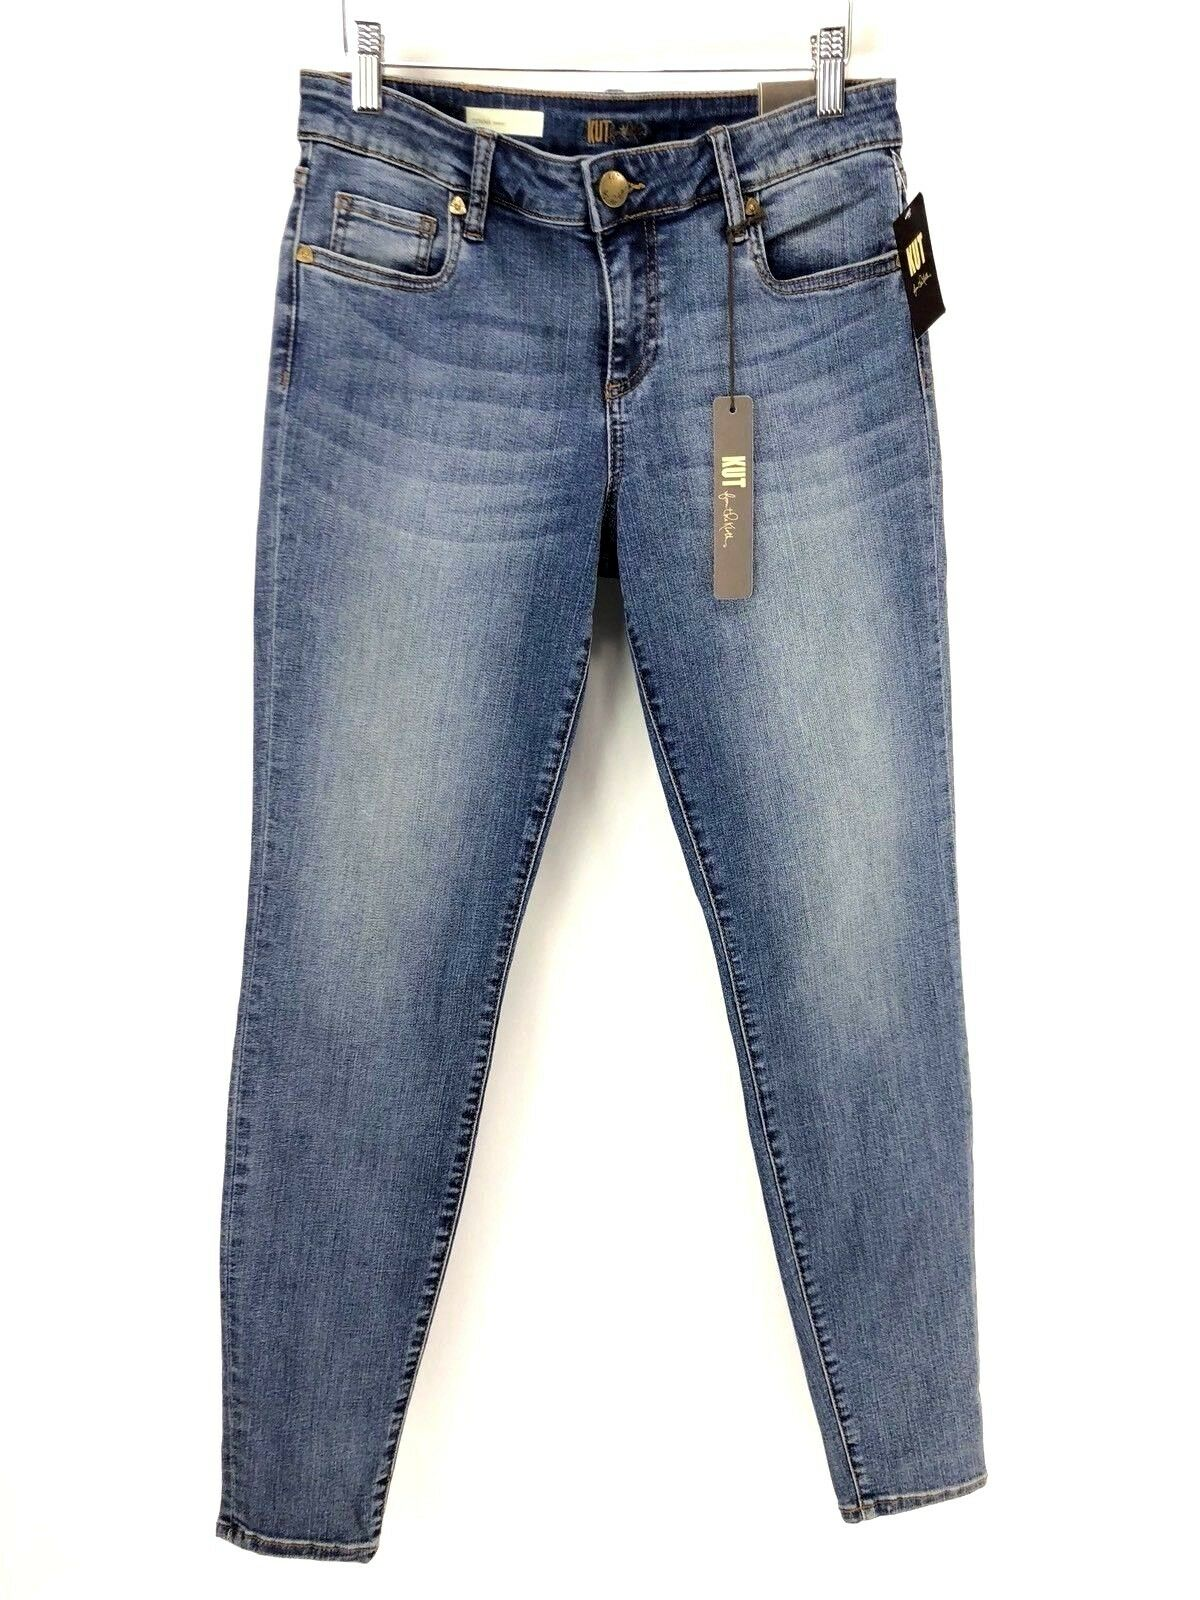 Kut From The Kloth Womens Jeans Size 6 Light Wash Skinny Jeans women NEW